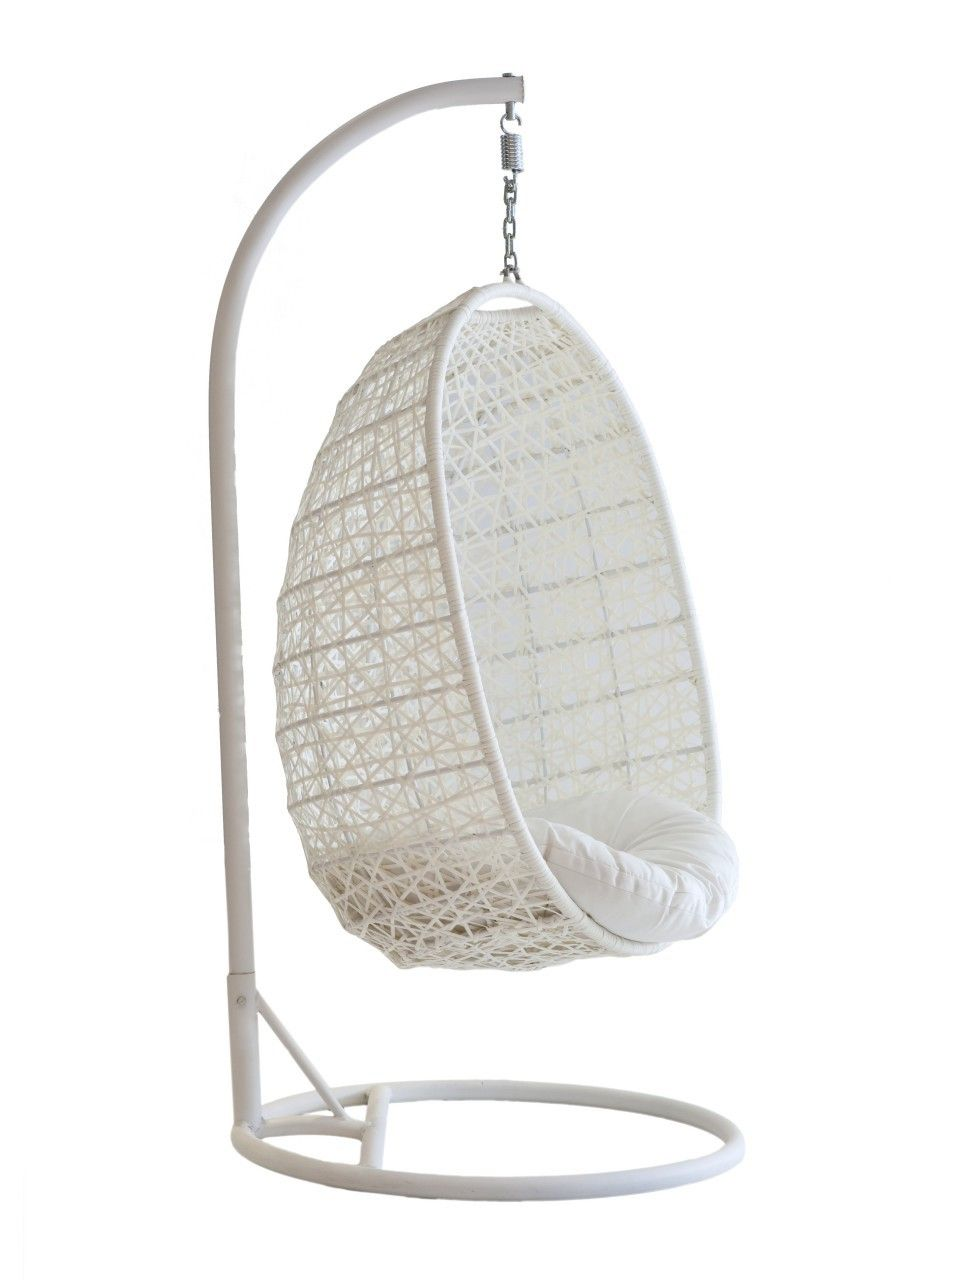 Furniture charming white viva design cora hanging chair for Indoor hanging chair for bedroom